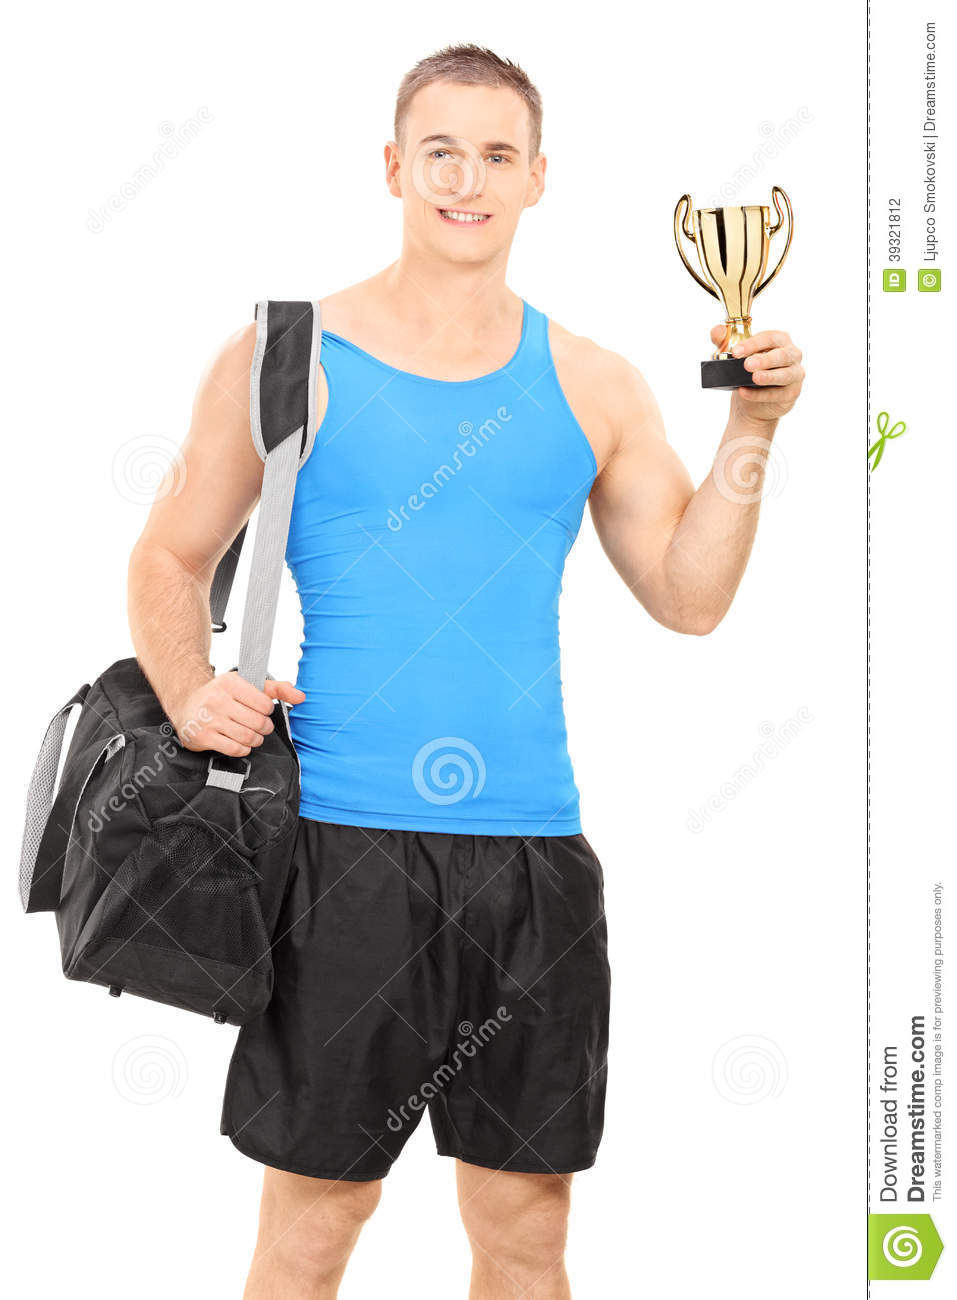 Young Man With Sports Bag And A Trophy Stock Photo - Image of sport ... 6a233291d0